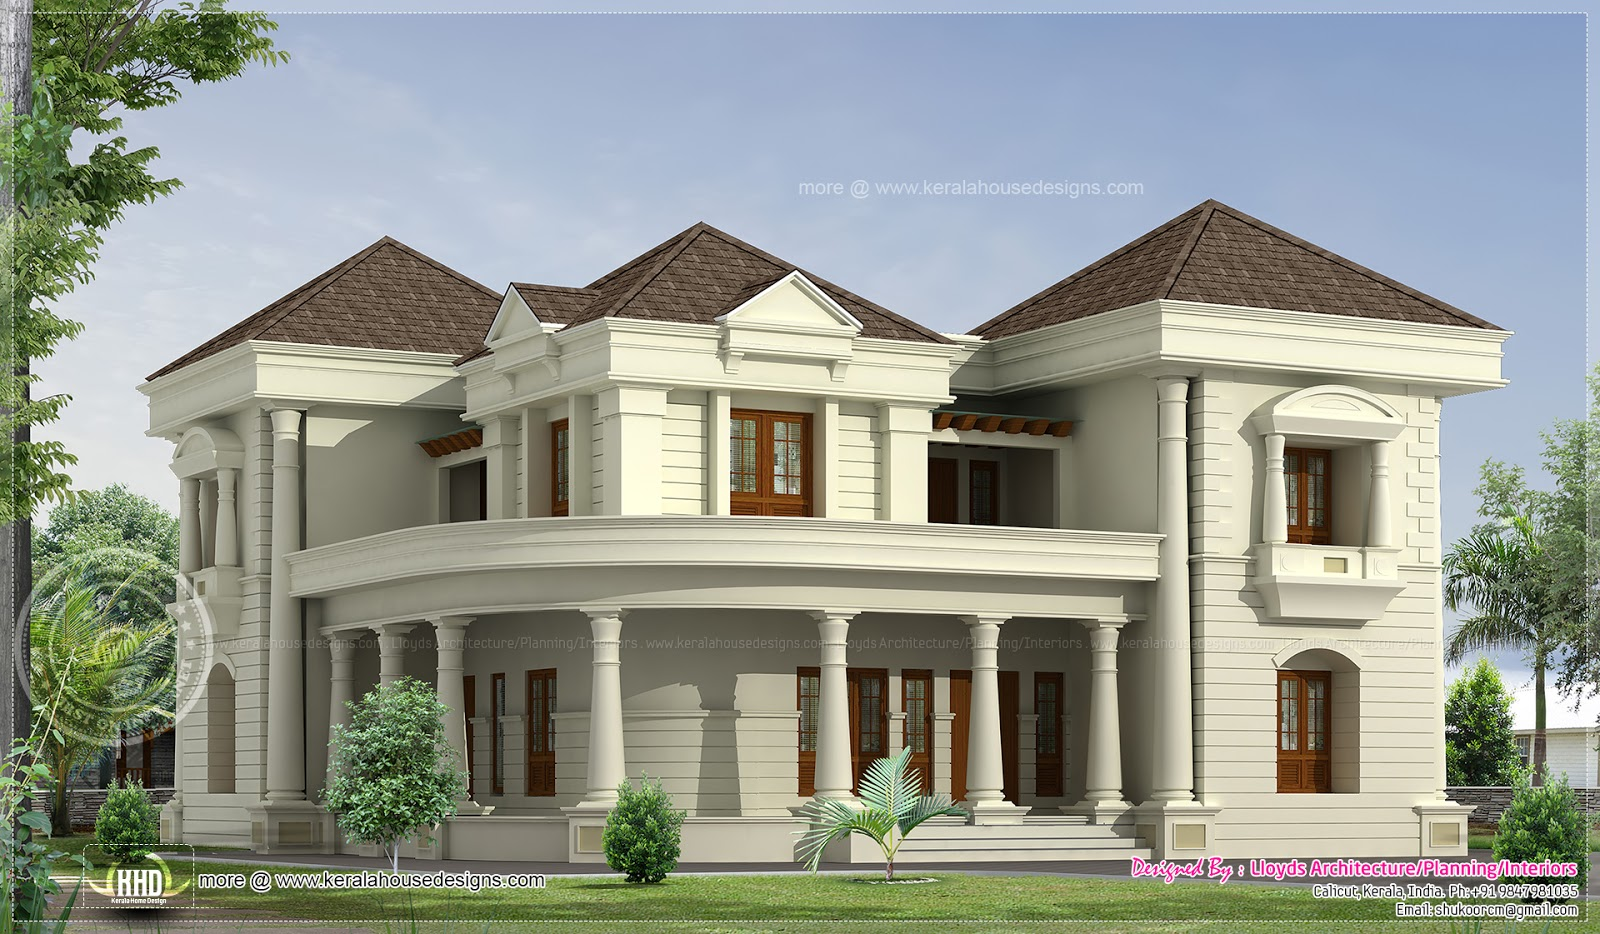 Bedroom Luxurious Bungalow floor plan and 3D View